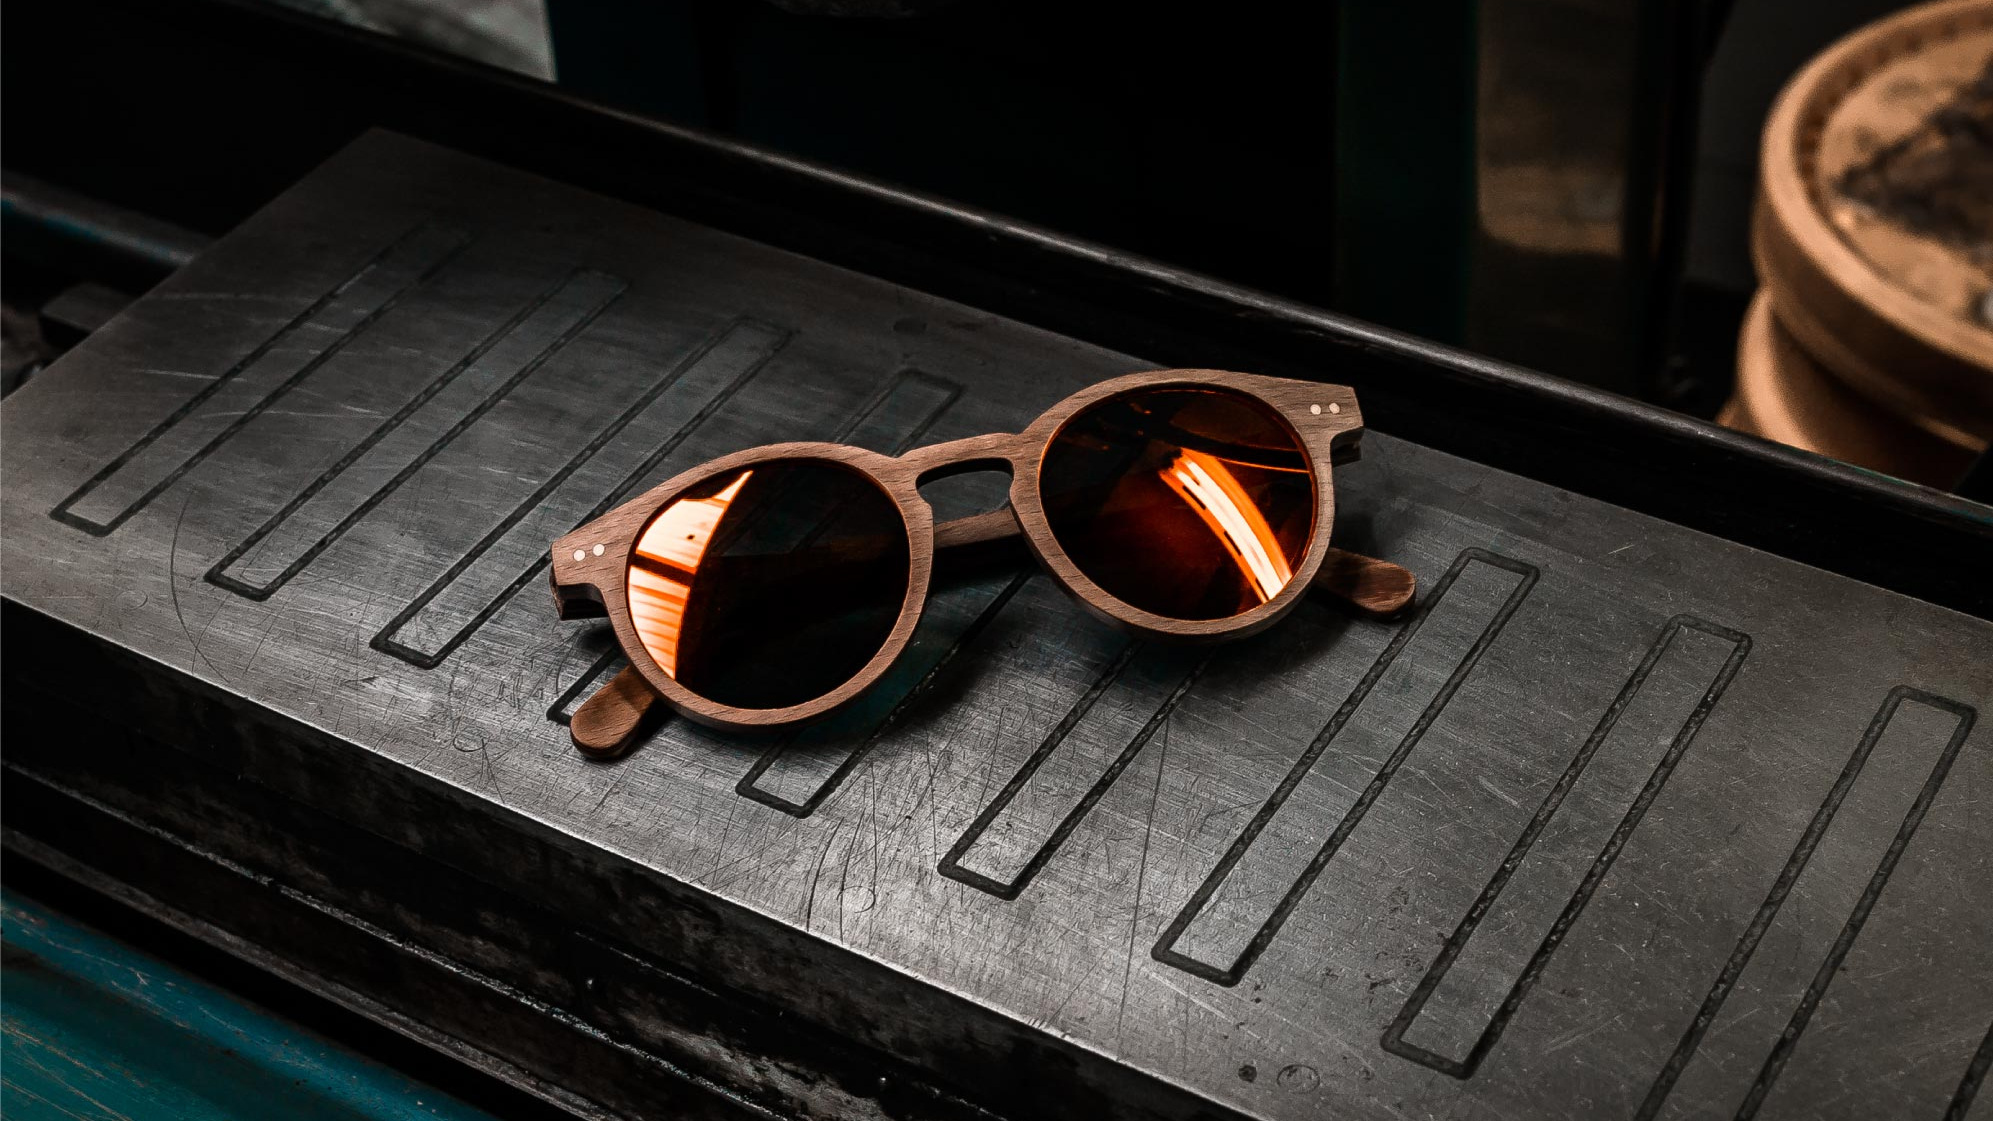 - We create premium sunglasses using premium materials and lenses.Our designs are created here by us in the United Kingdom, our frames are inspired by motorsports and the use of extreme materials.Based on our roots of extreme sports/lifestyle and exploratory nature we want to merge a sense of sophistication, adrenaline fuelled adventure and active life style to inspire our approach to traditional pair of sunglasses.